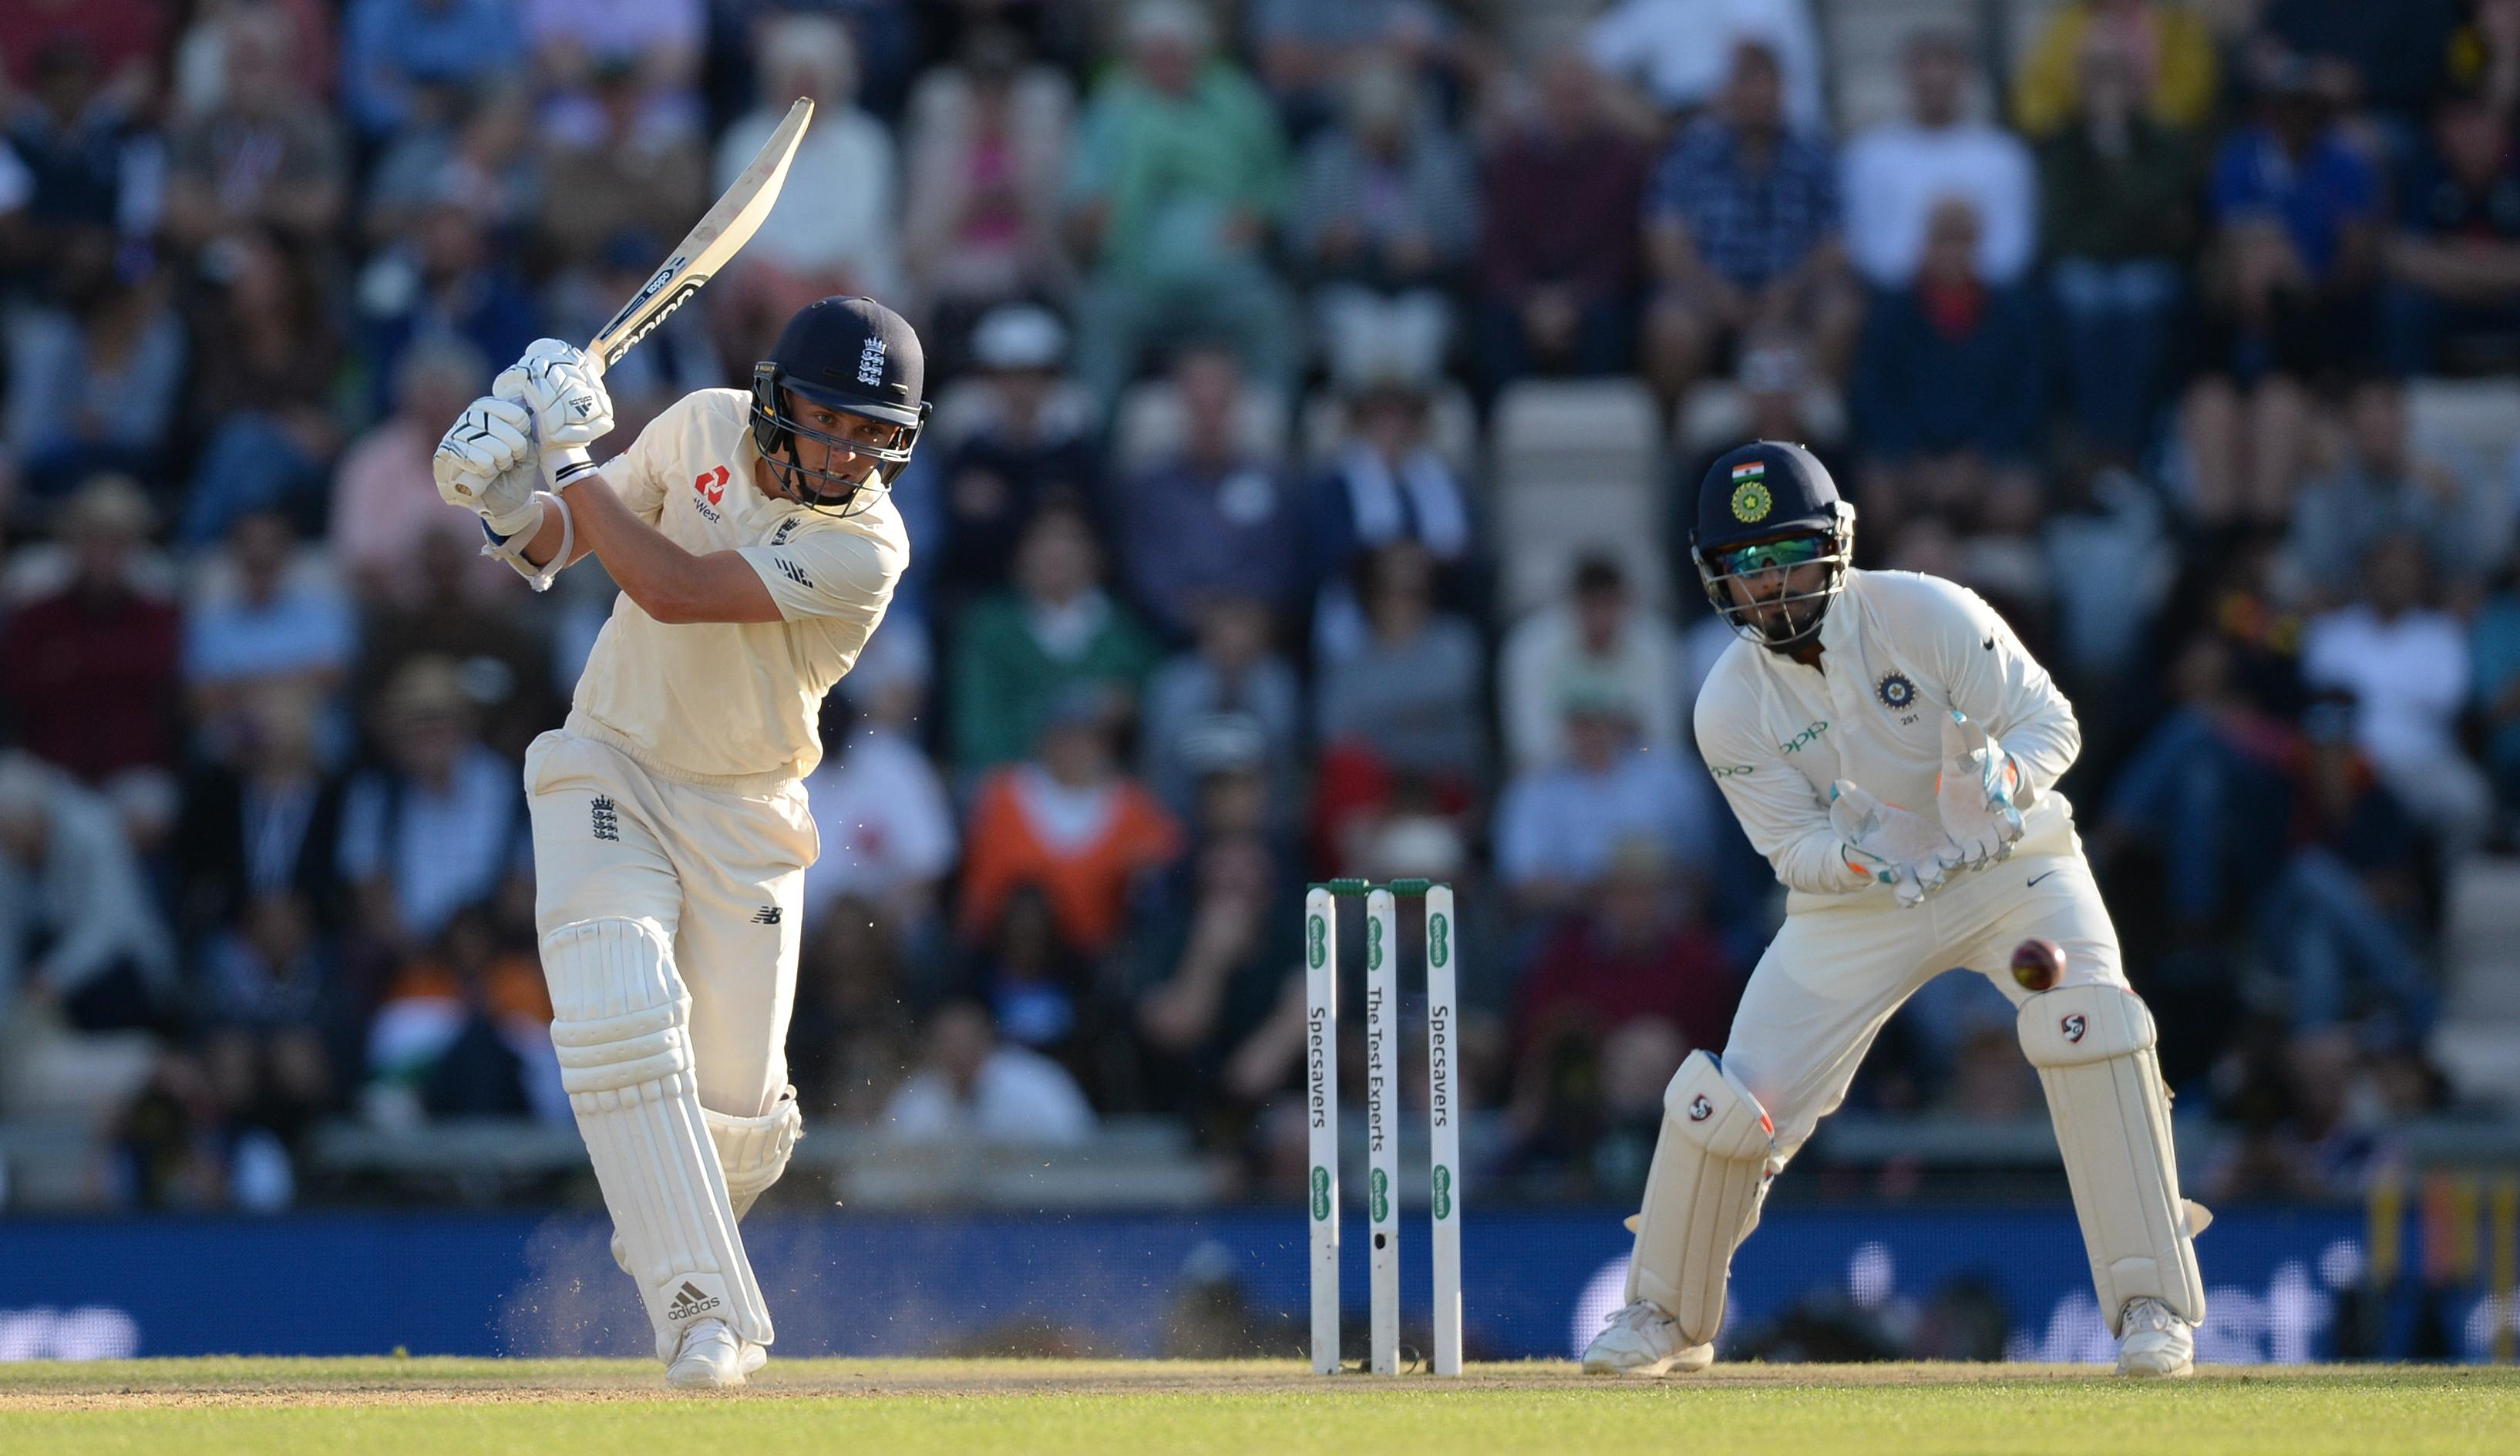 Sam Curran batted beautifully as he finished the day unbeaten on 37